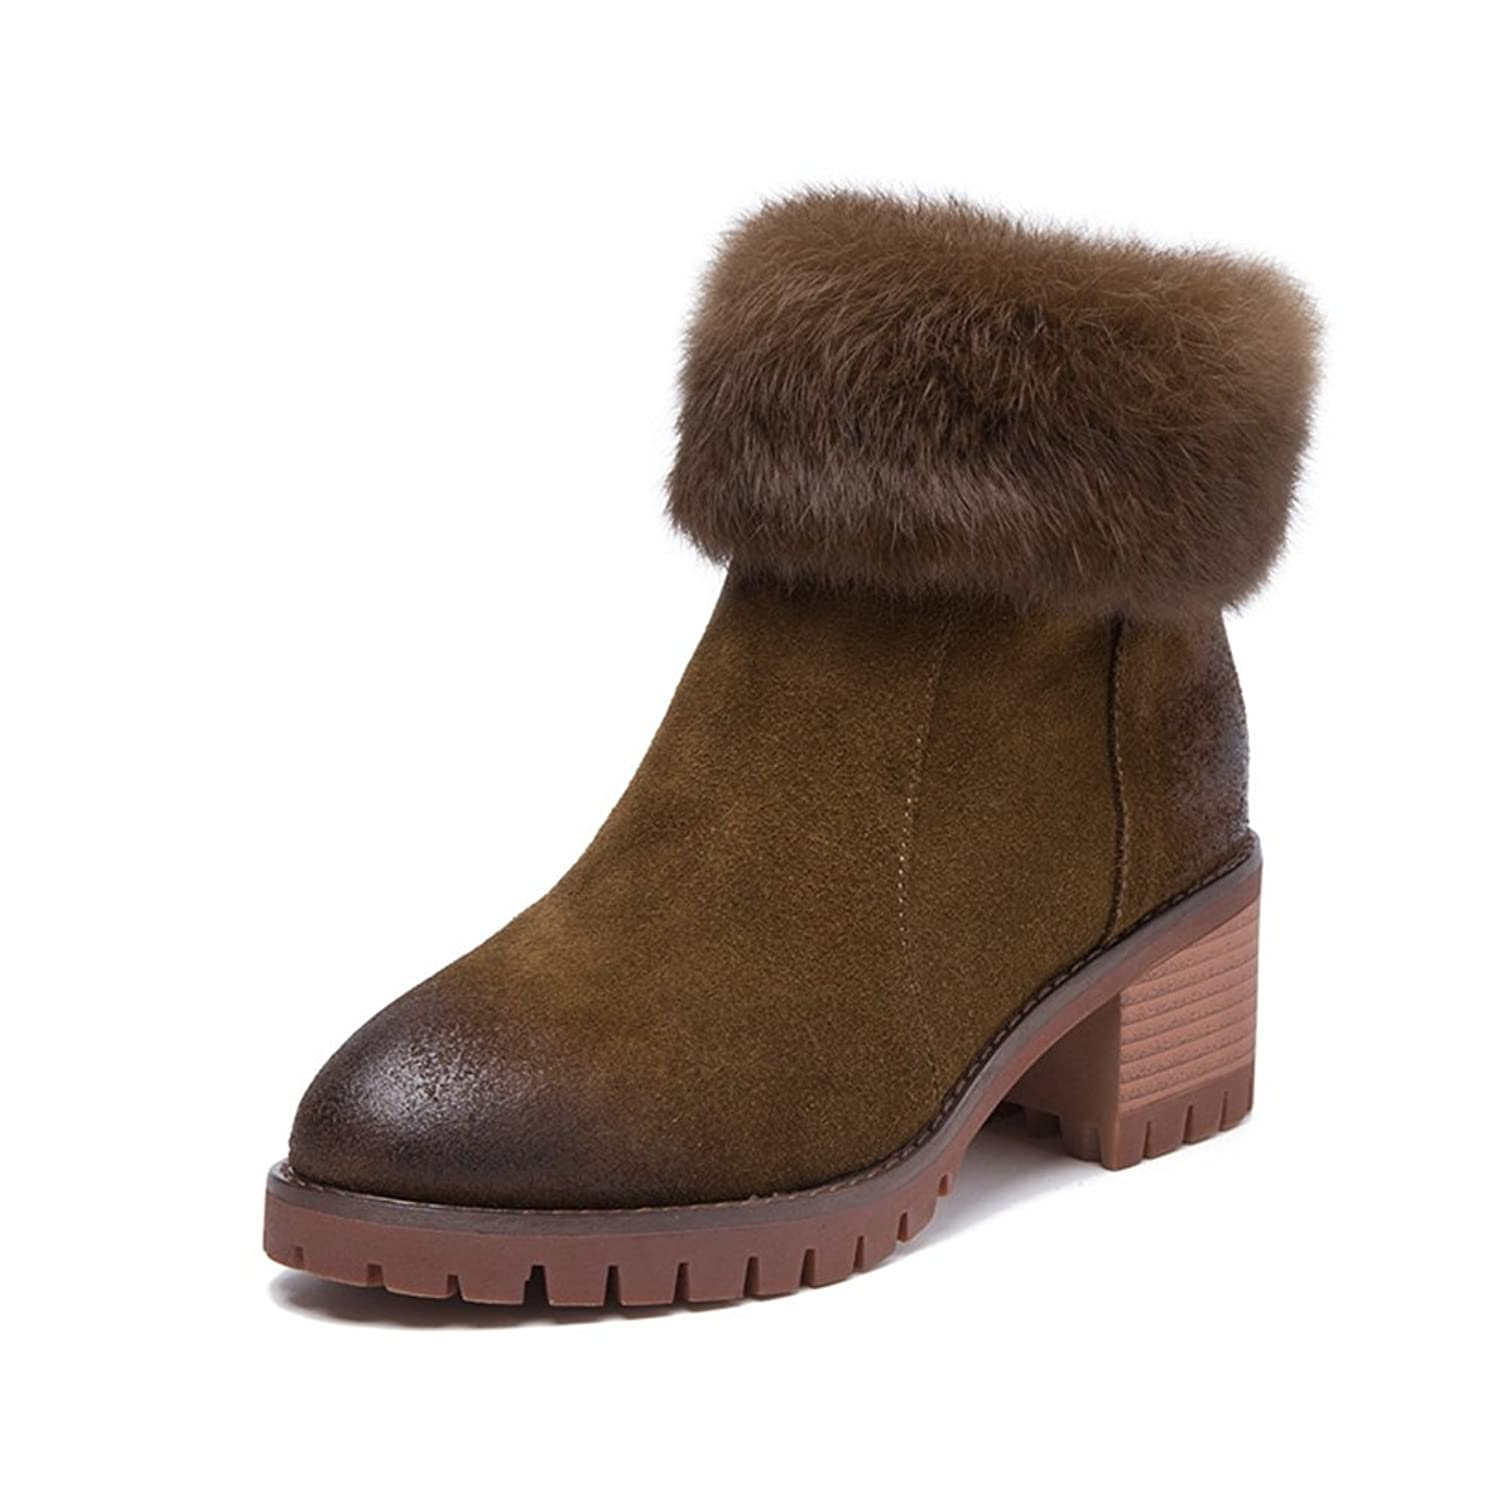 GIY Women Fashion Short Fur Lining Martin Boots Platform Chunky Heel Ankle-high Warm Winter Bootie Shoes